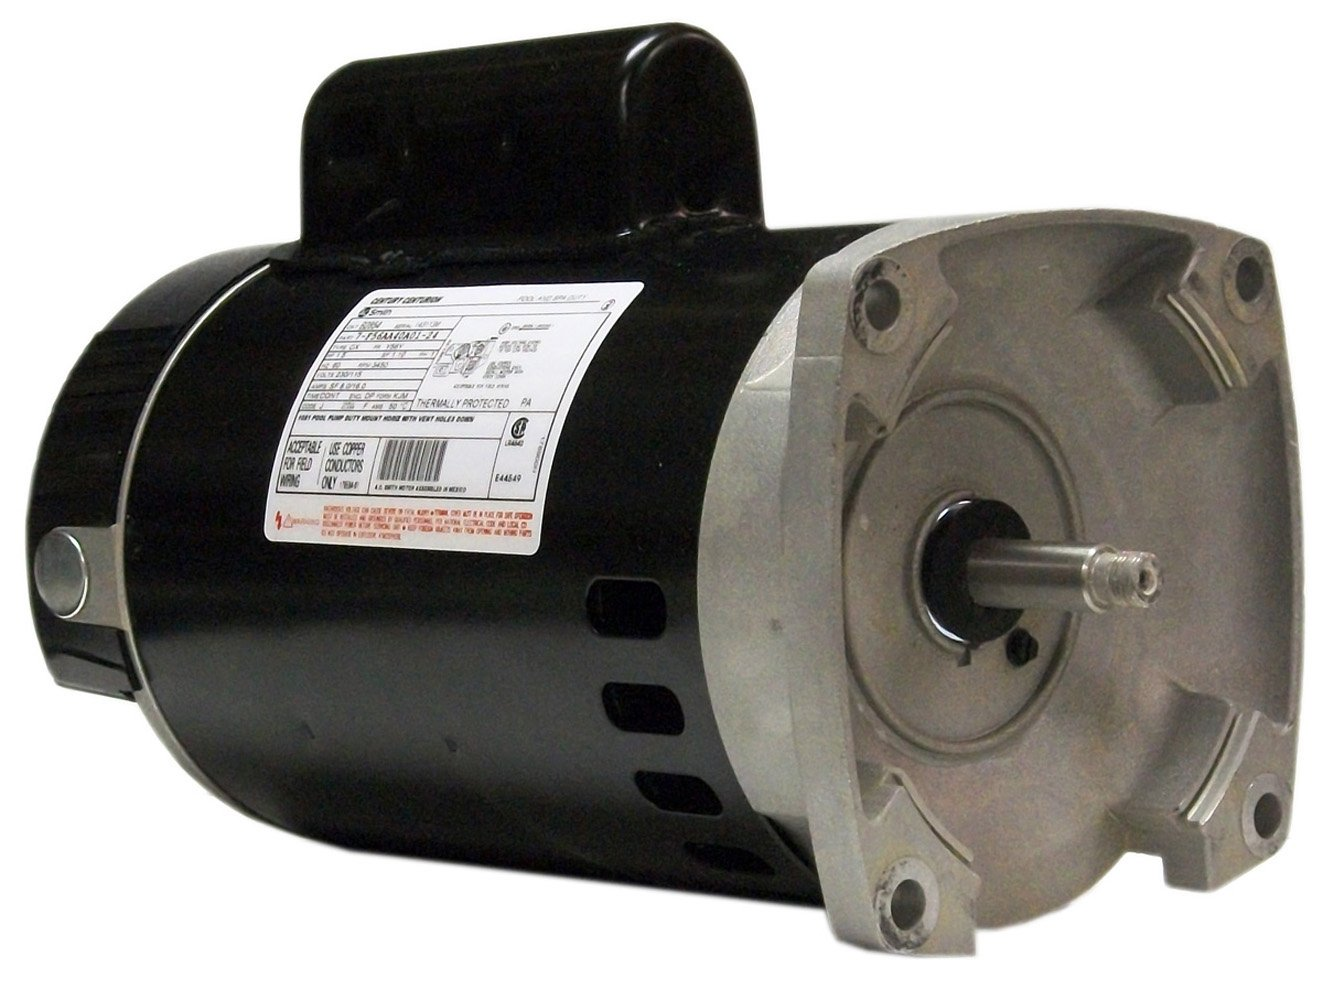 A.O. Smith B2841 1 HP, 3450 RPM, 7.8-7.4/14.8 Amps, 1.65 Service Factor, 56Y Frame, PSC, ODP Enclosure, Square Flange Pool Motor